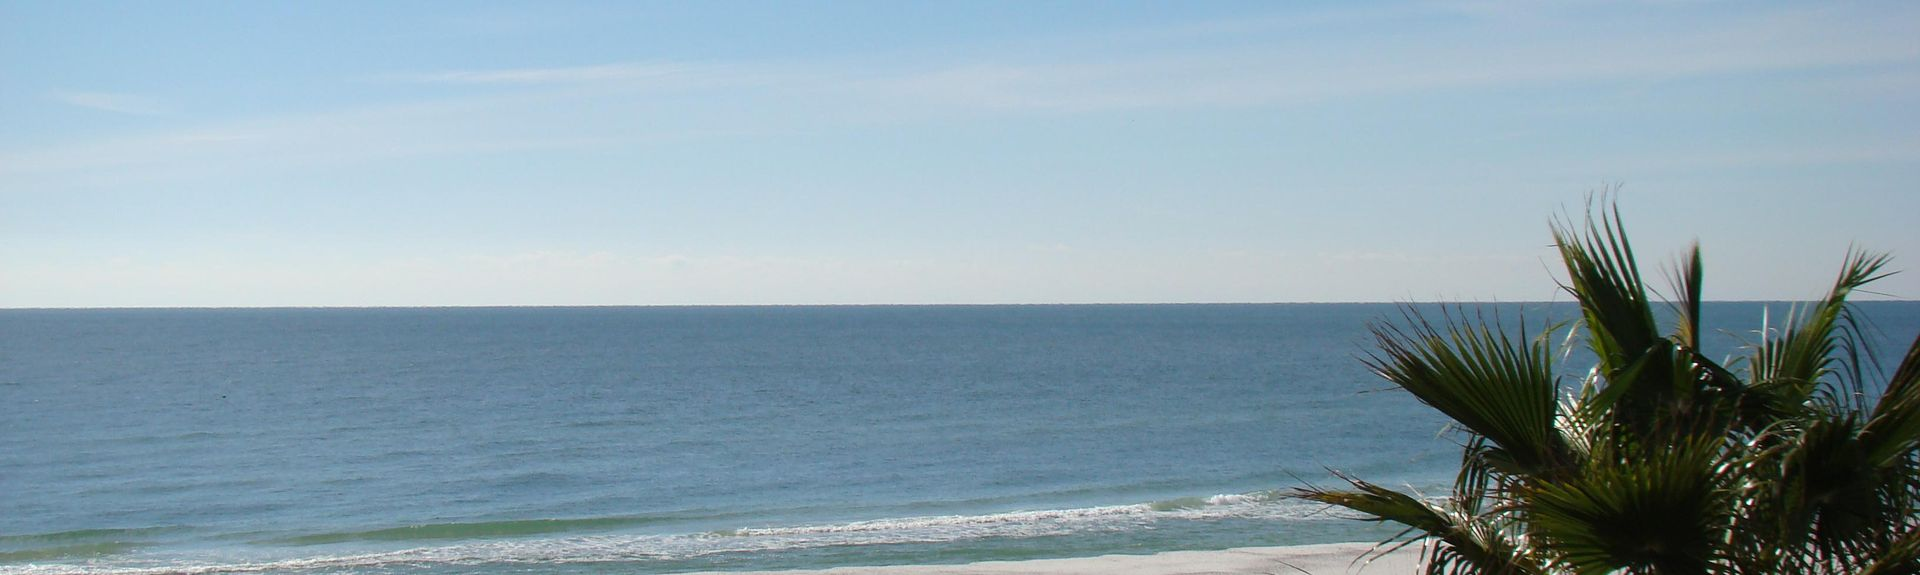 Seascape (Orange Beach, Alabama, Estados Unidos)